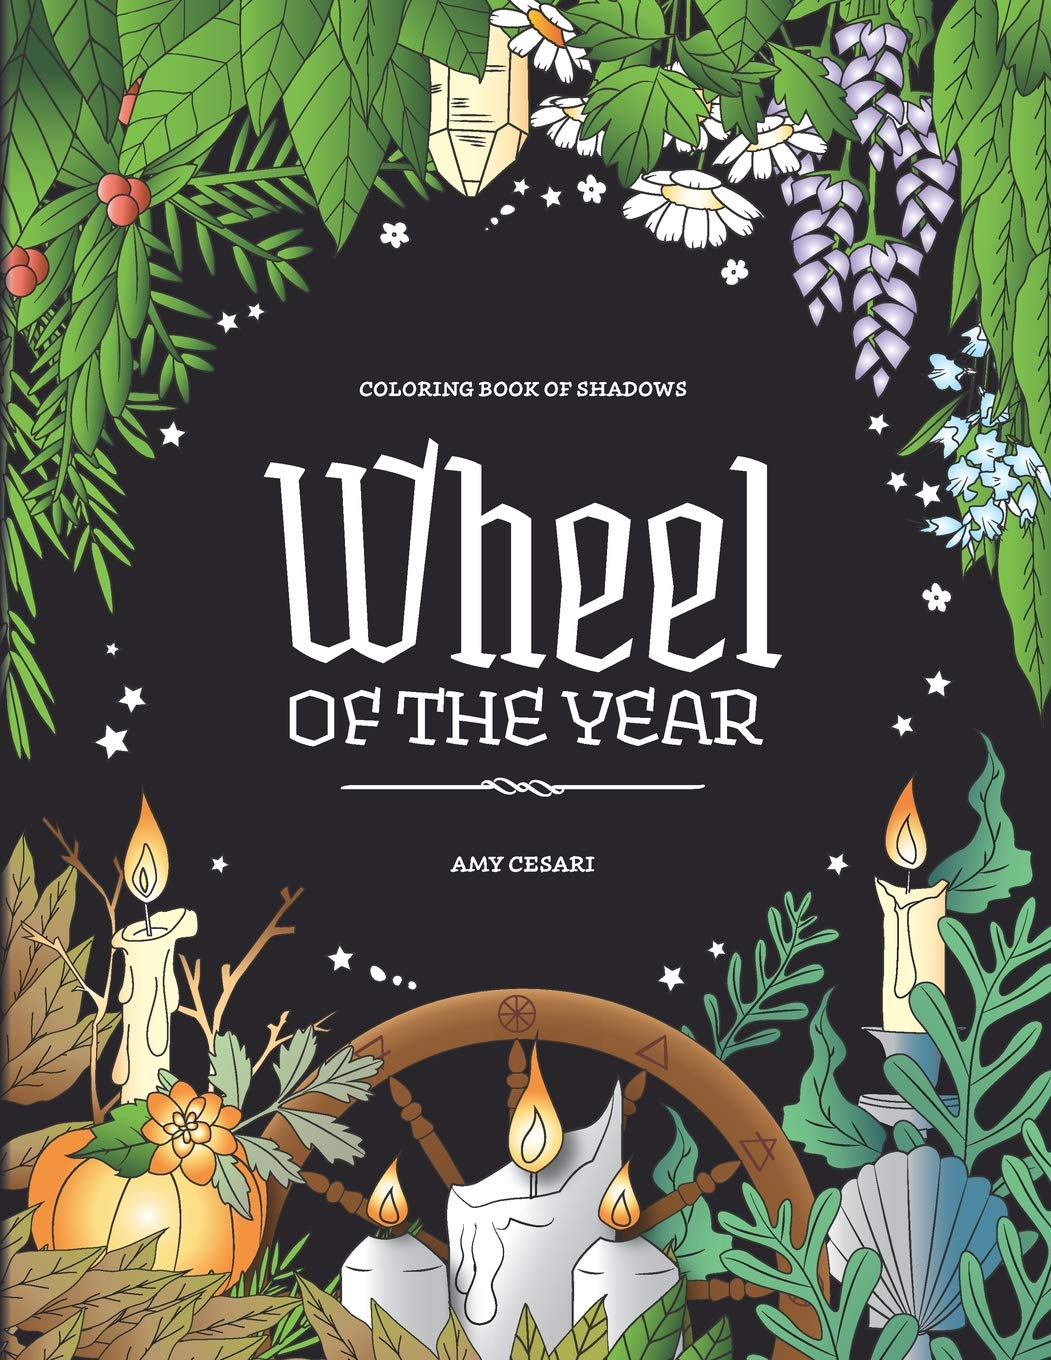 Coloring Book Shadows Wheel Year product image